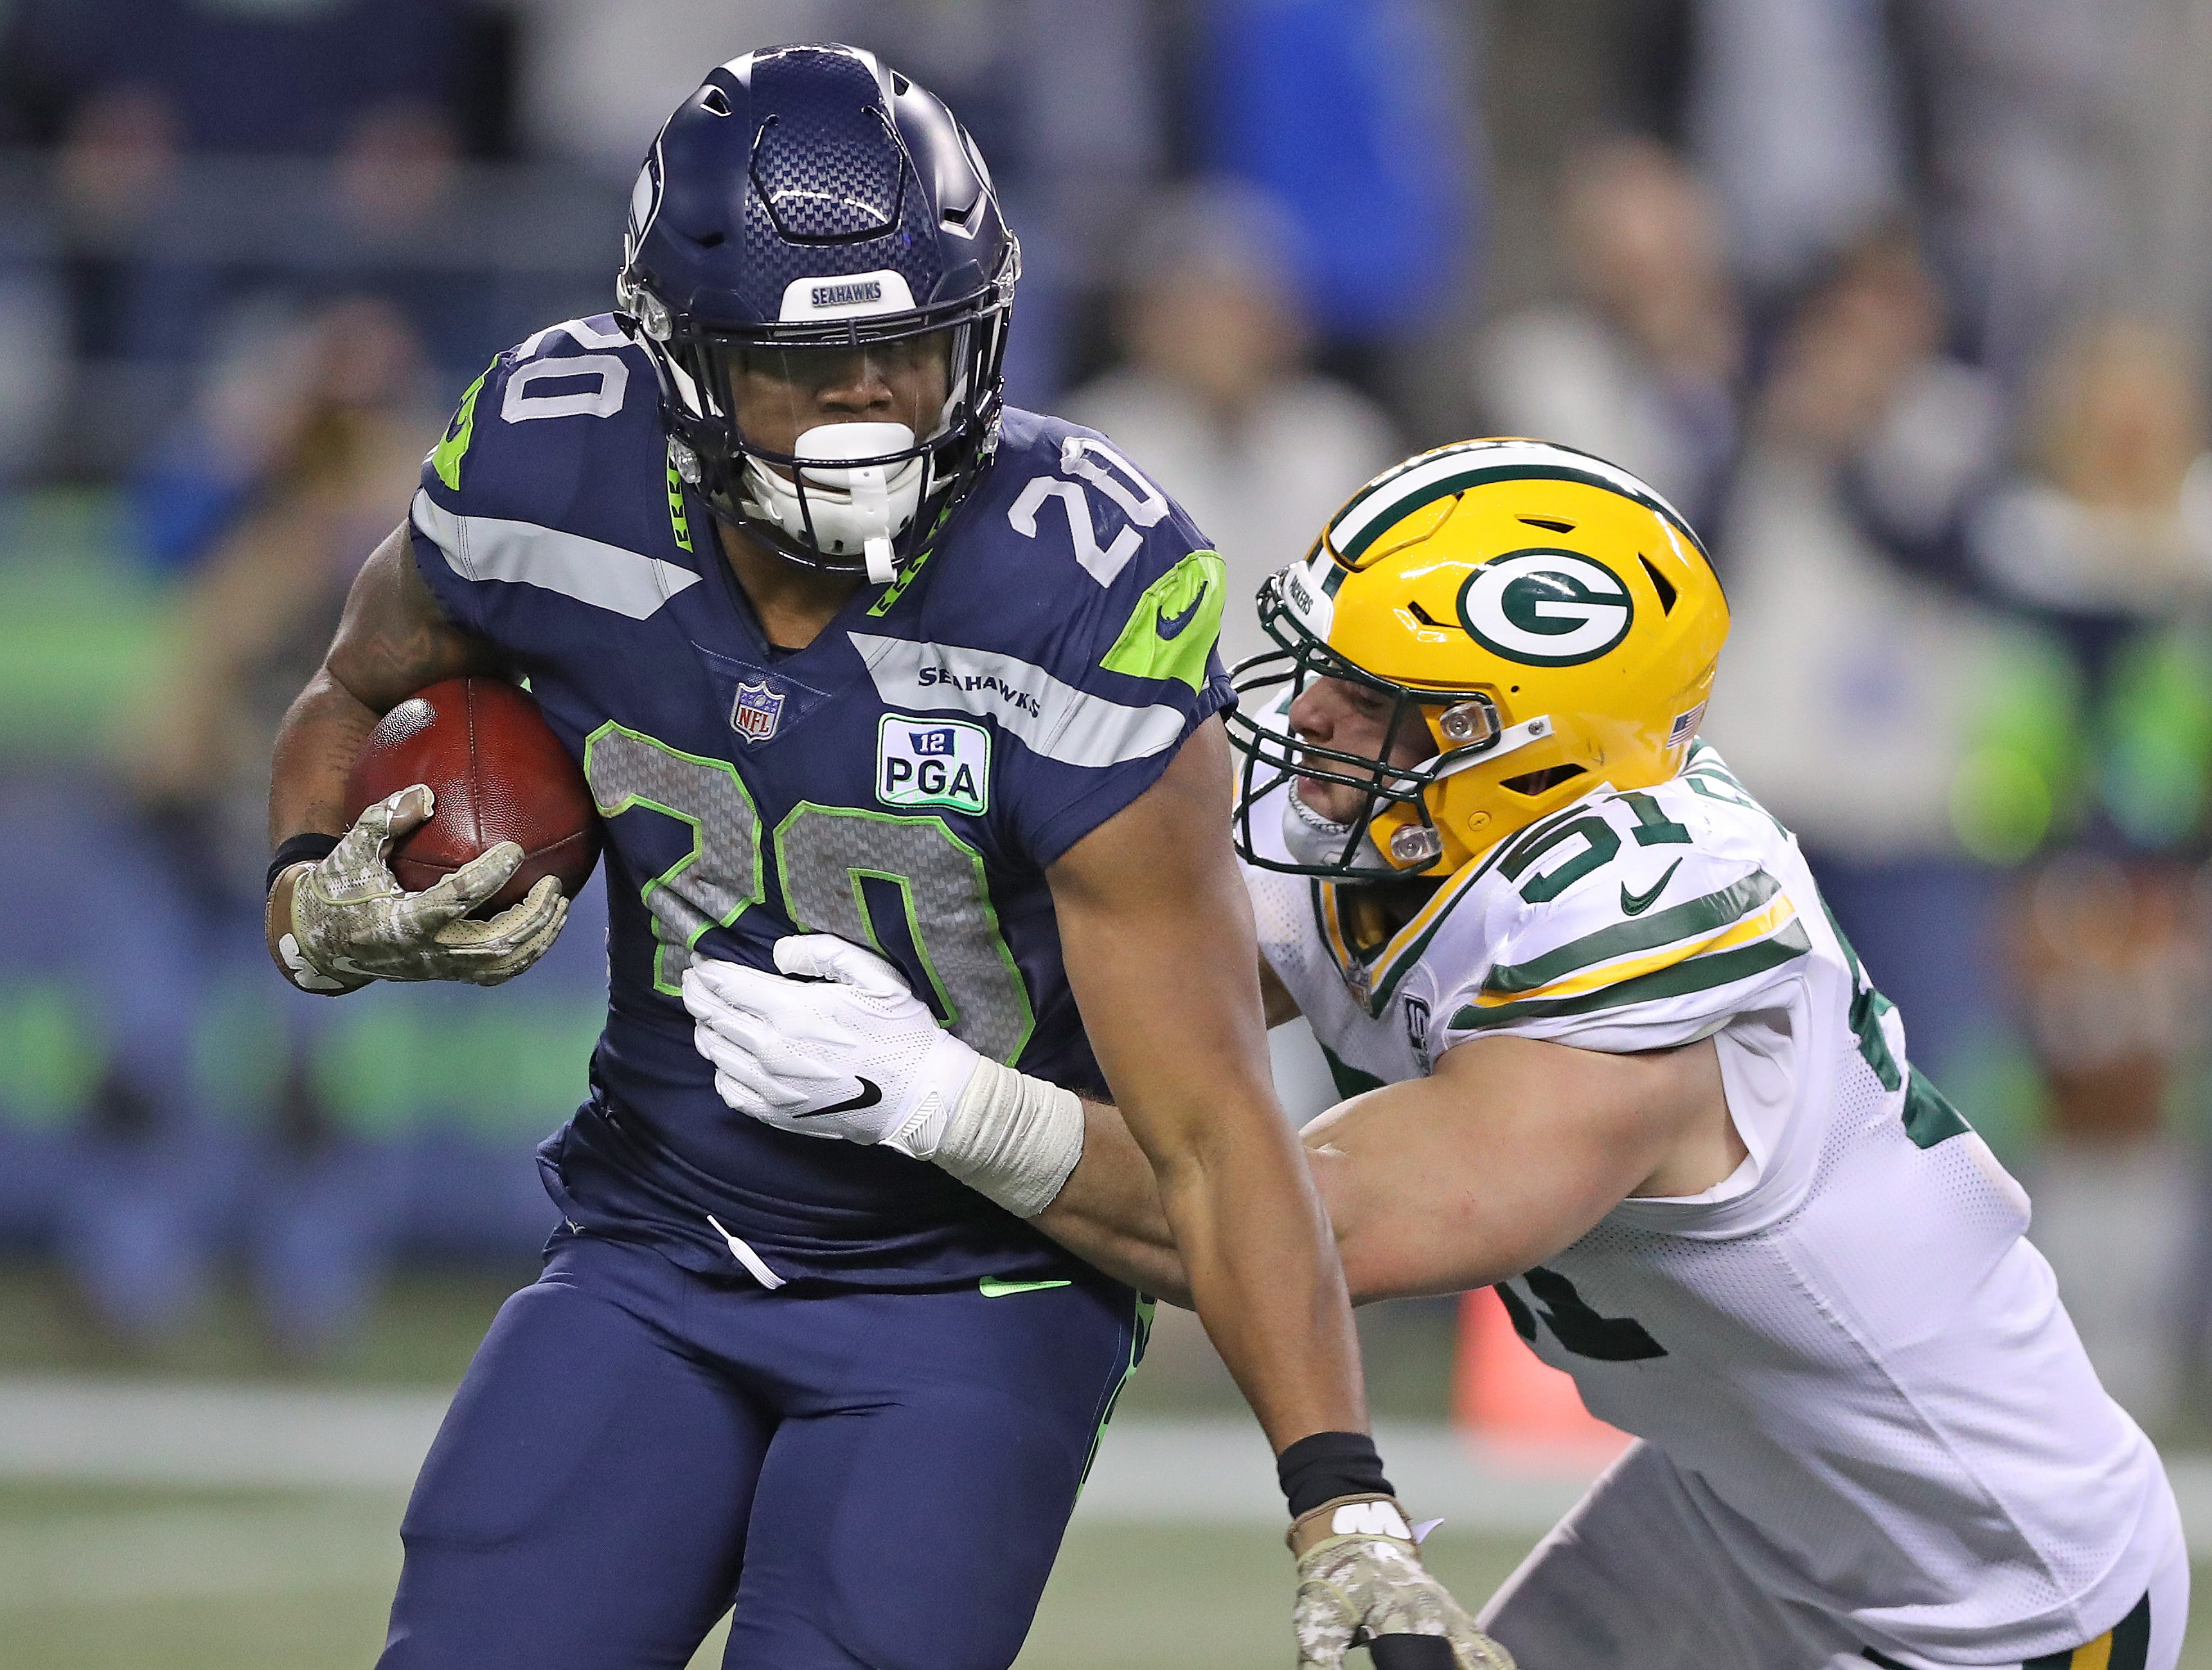 Green Bay Packers linebacker Kyler Fackrell (51) tackles running back Rashaad Penny (20) against the Seattle Seahawks at CenturyLink Field Thursday, November 15, 2018 in Seattle, WA. Jim Matthews/USA TODAY NETWORK-Wis